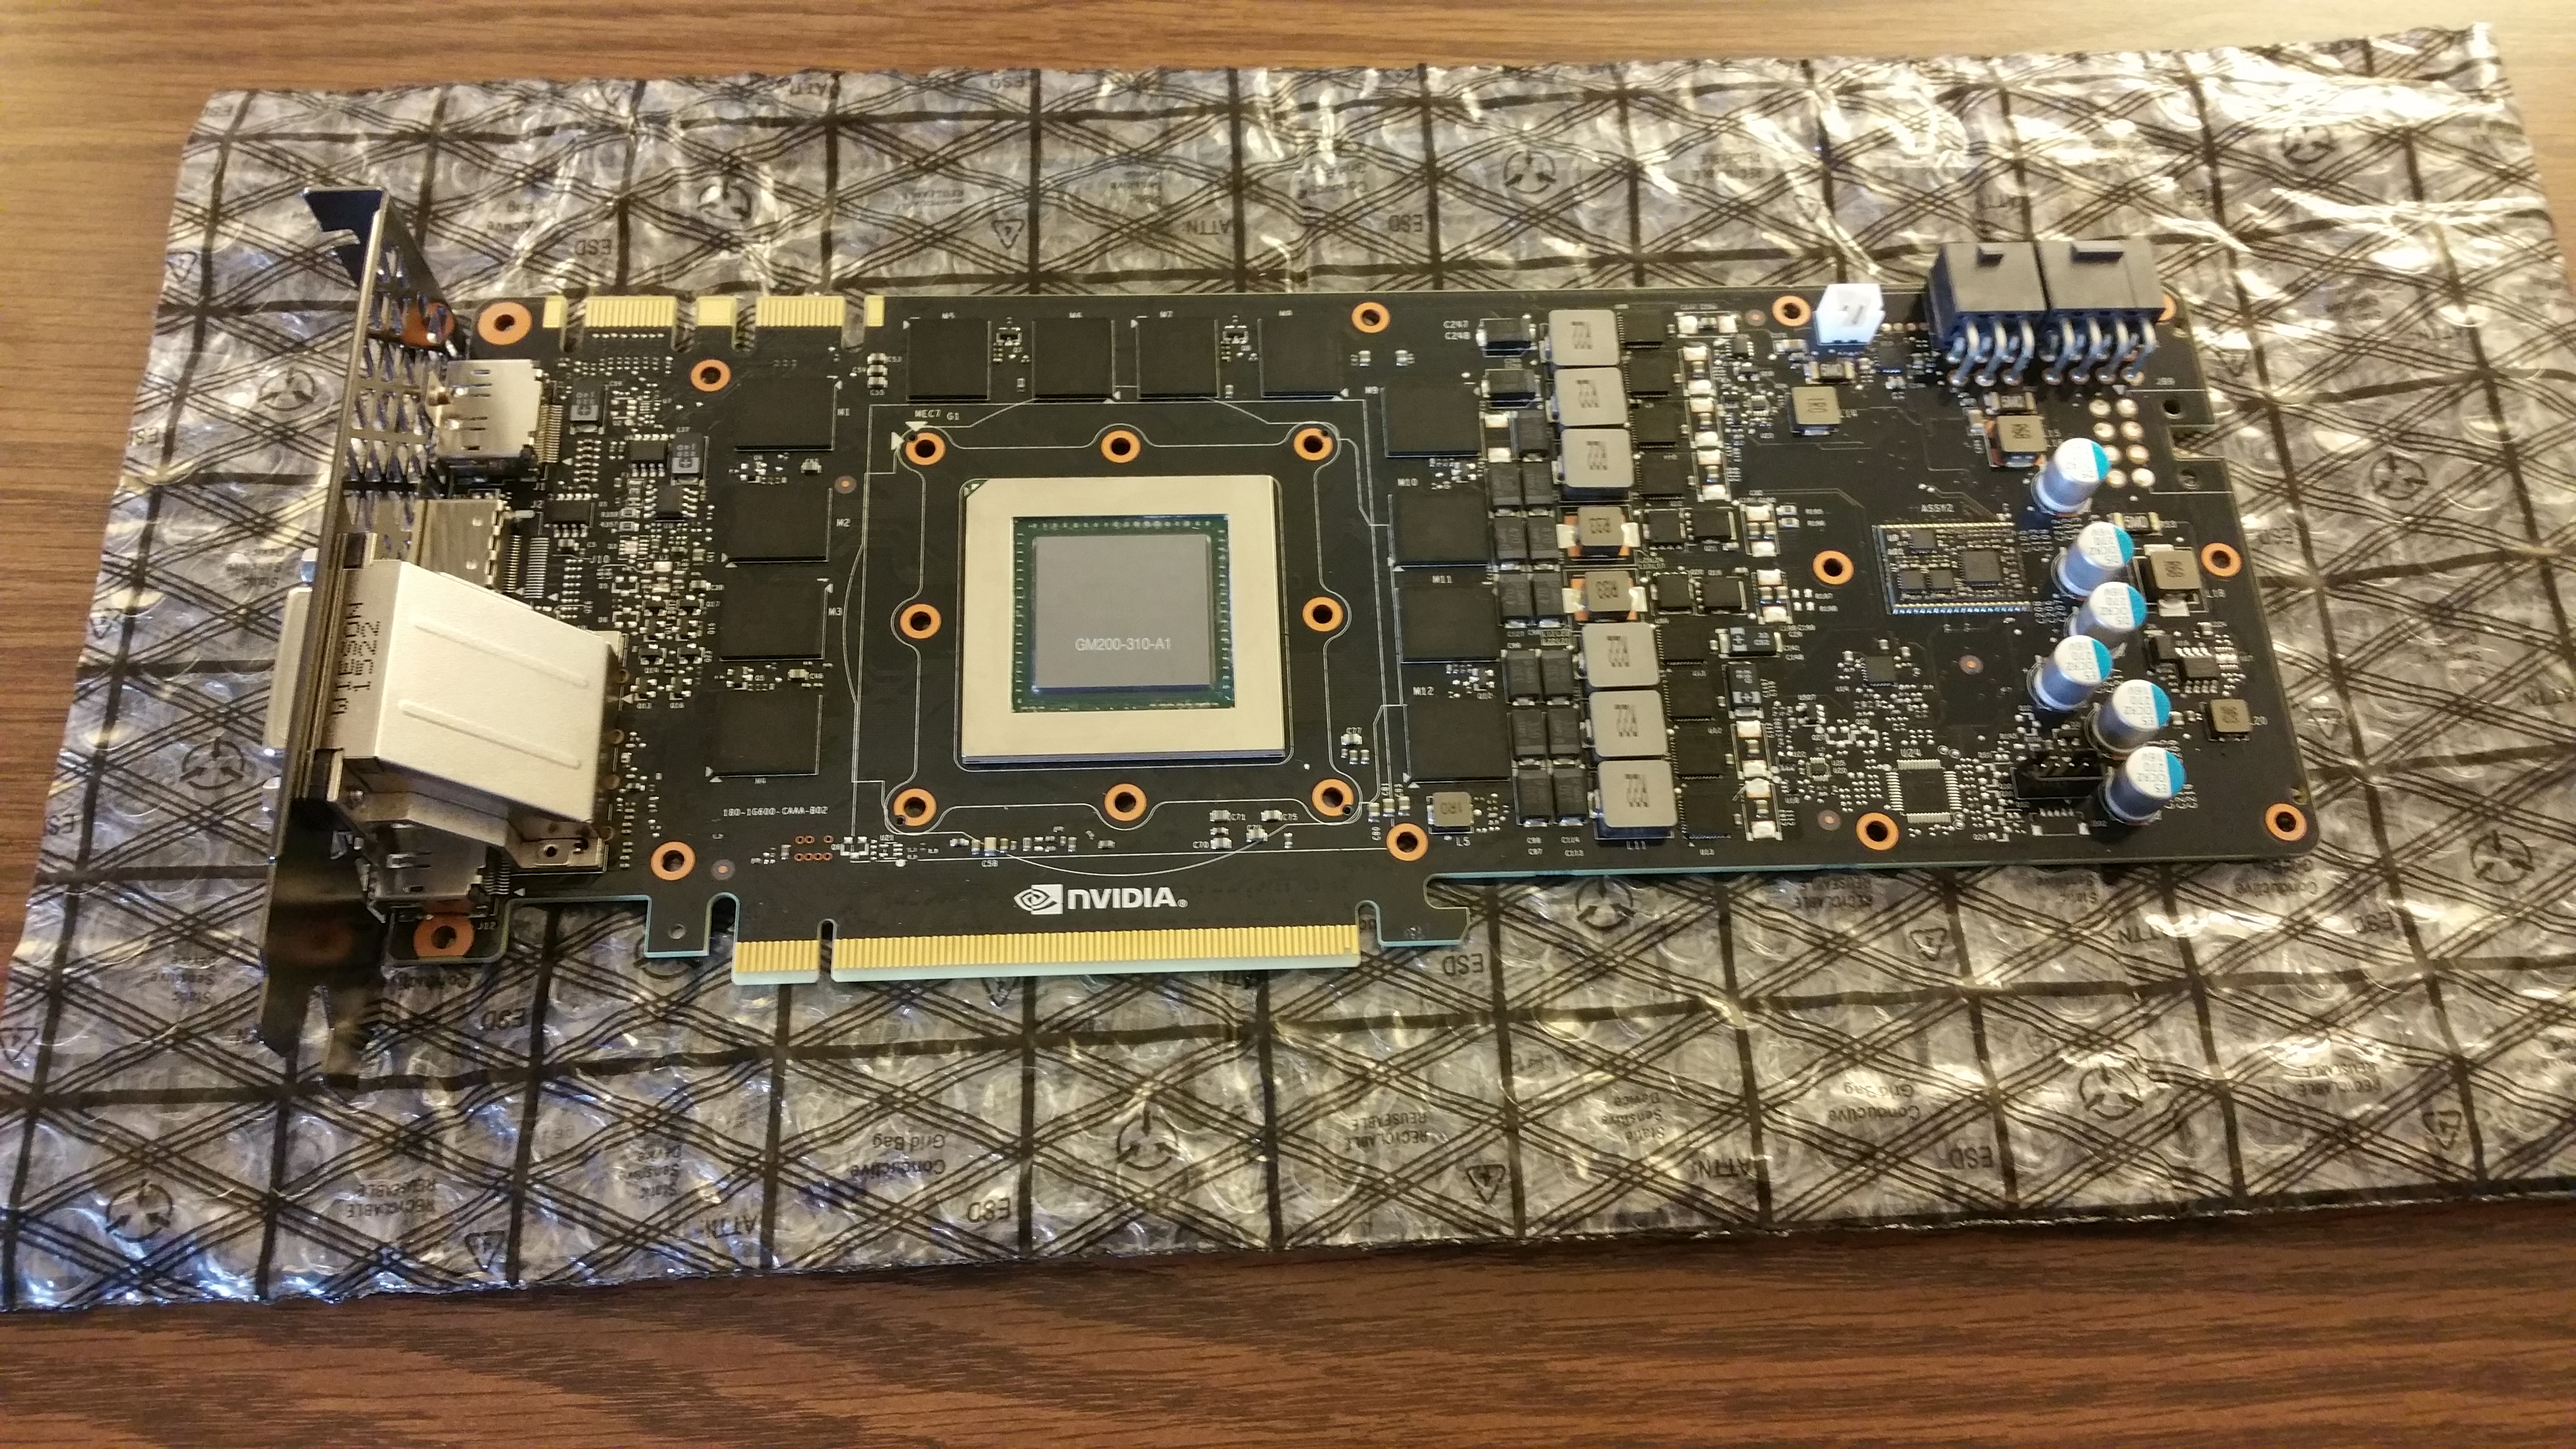 Clean it up to prepare for water block.